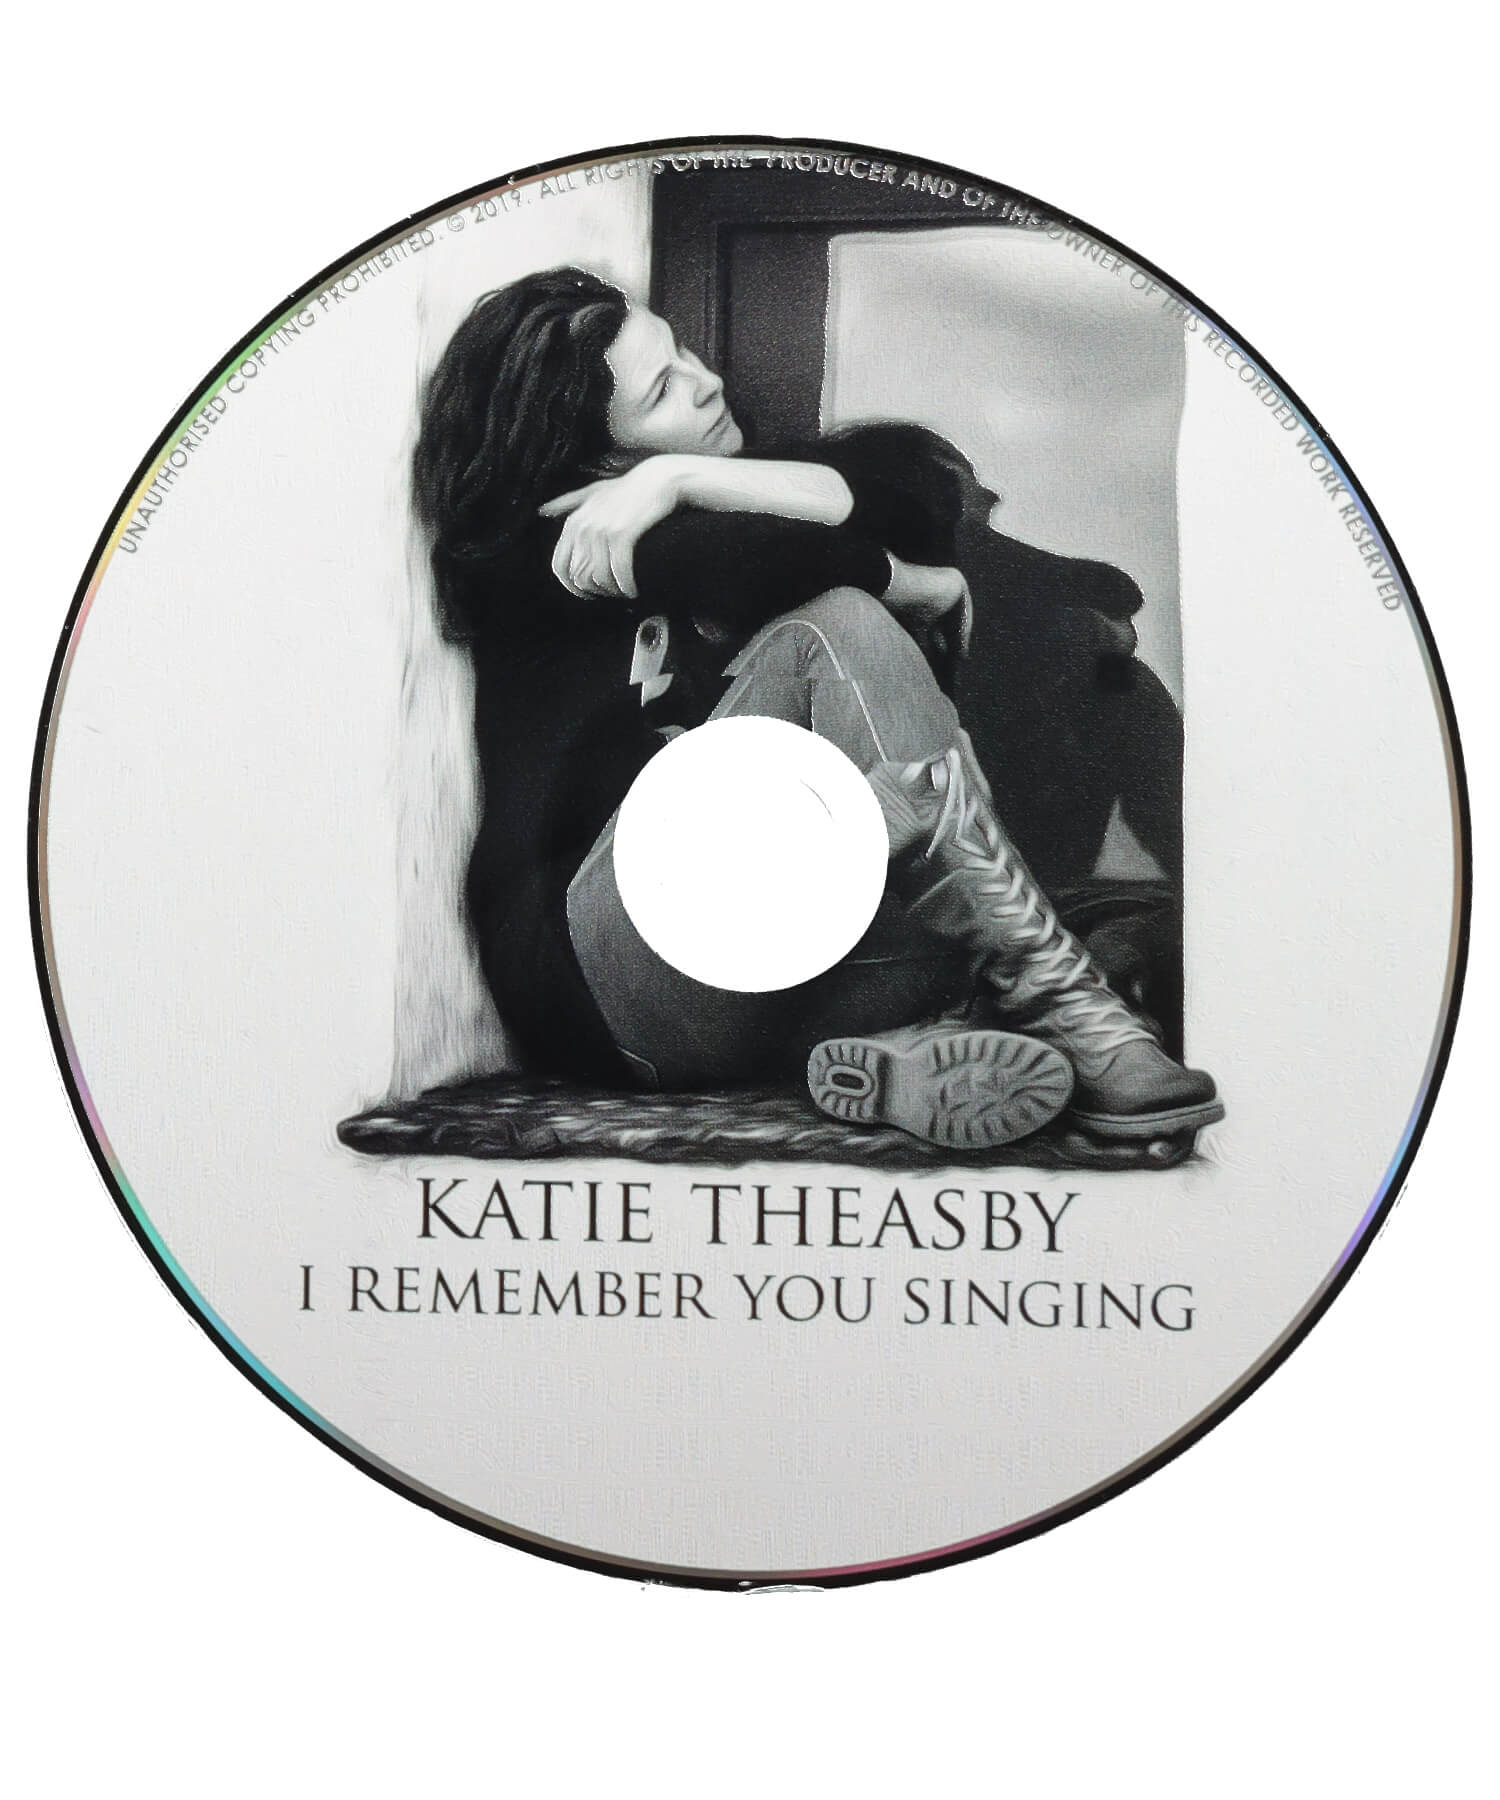 I Remember You Singing - Katie Theasby - [Katie Theasby] - Music - Irish Gifts